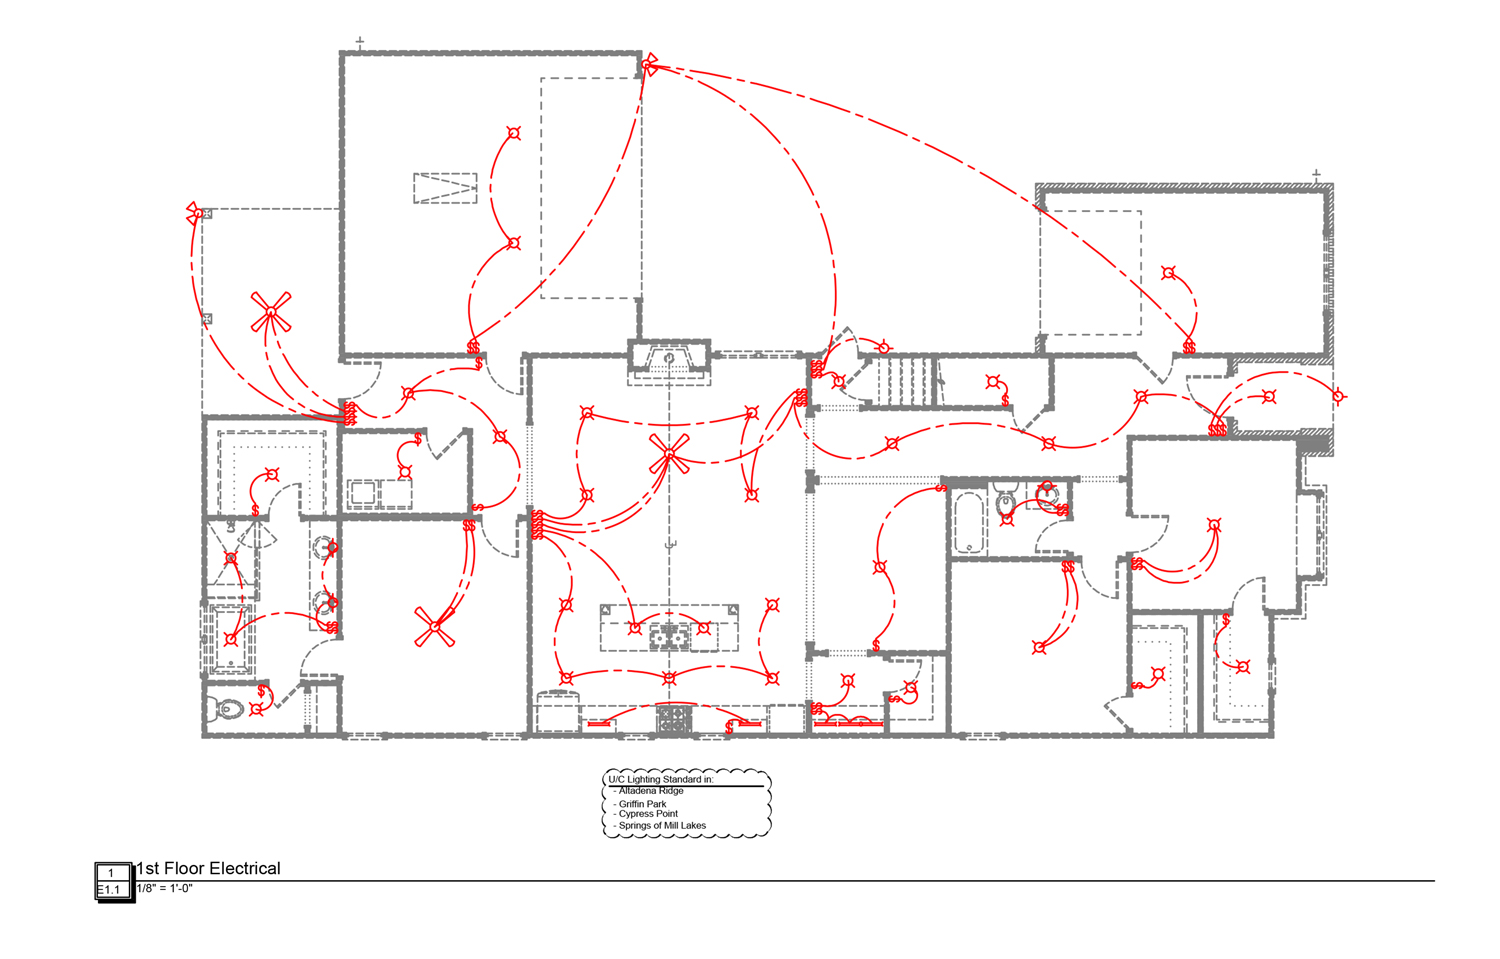 12_Electrical-Layout